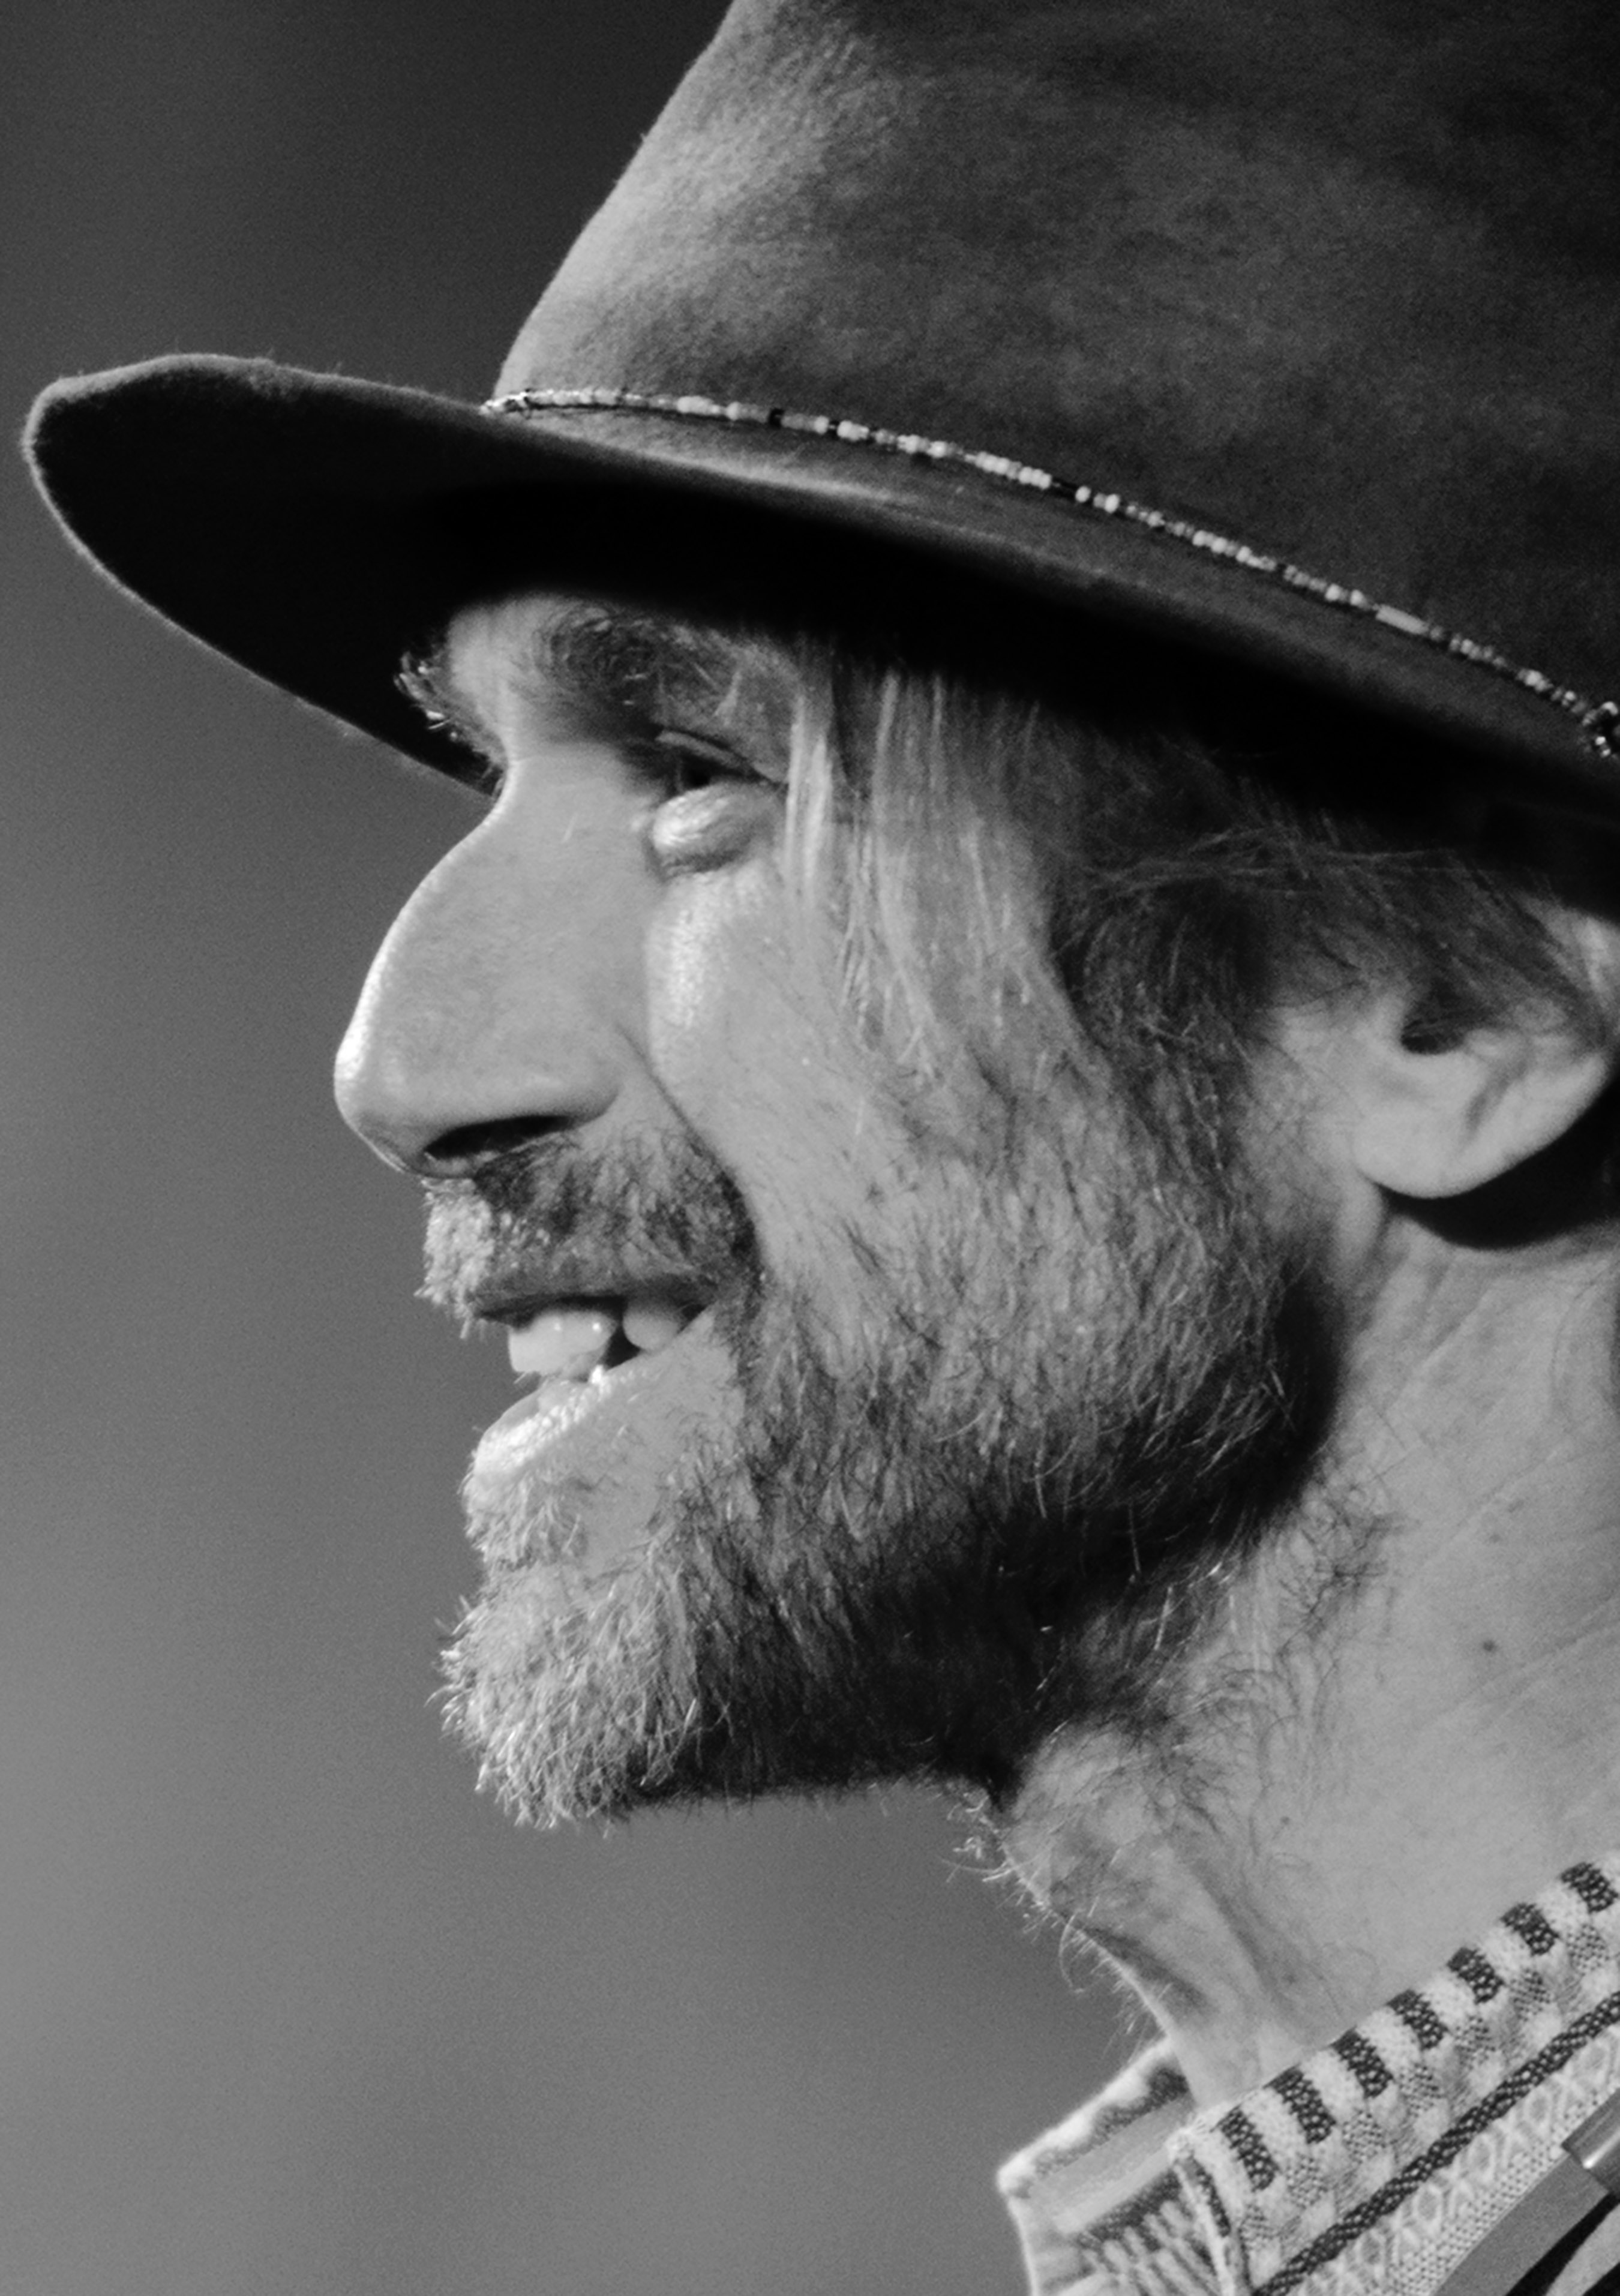 TODD SNIDER AT KIRBY CENTER